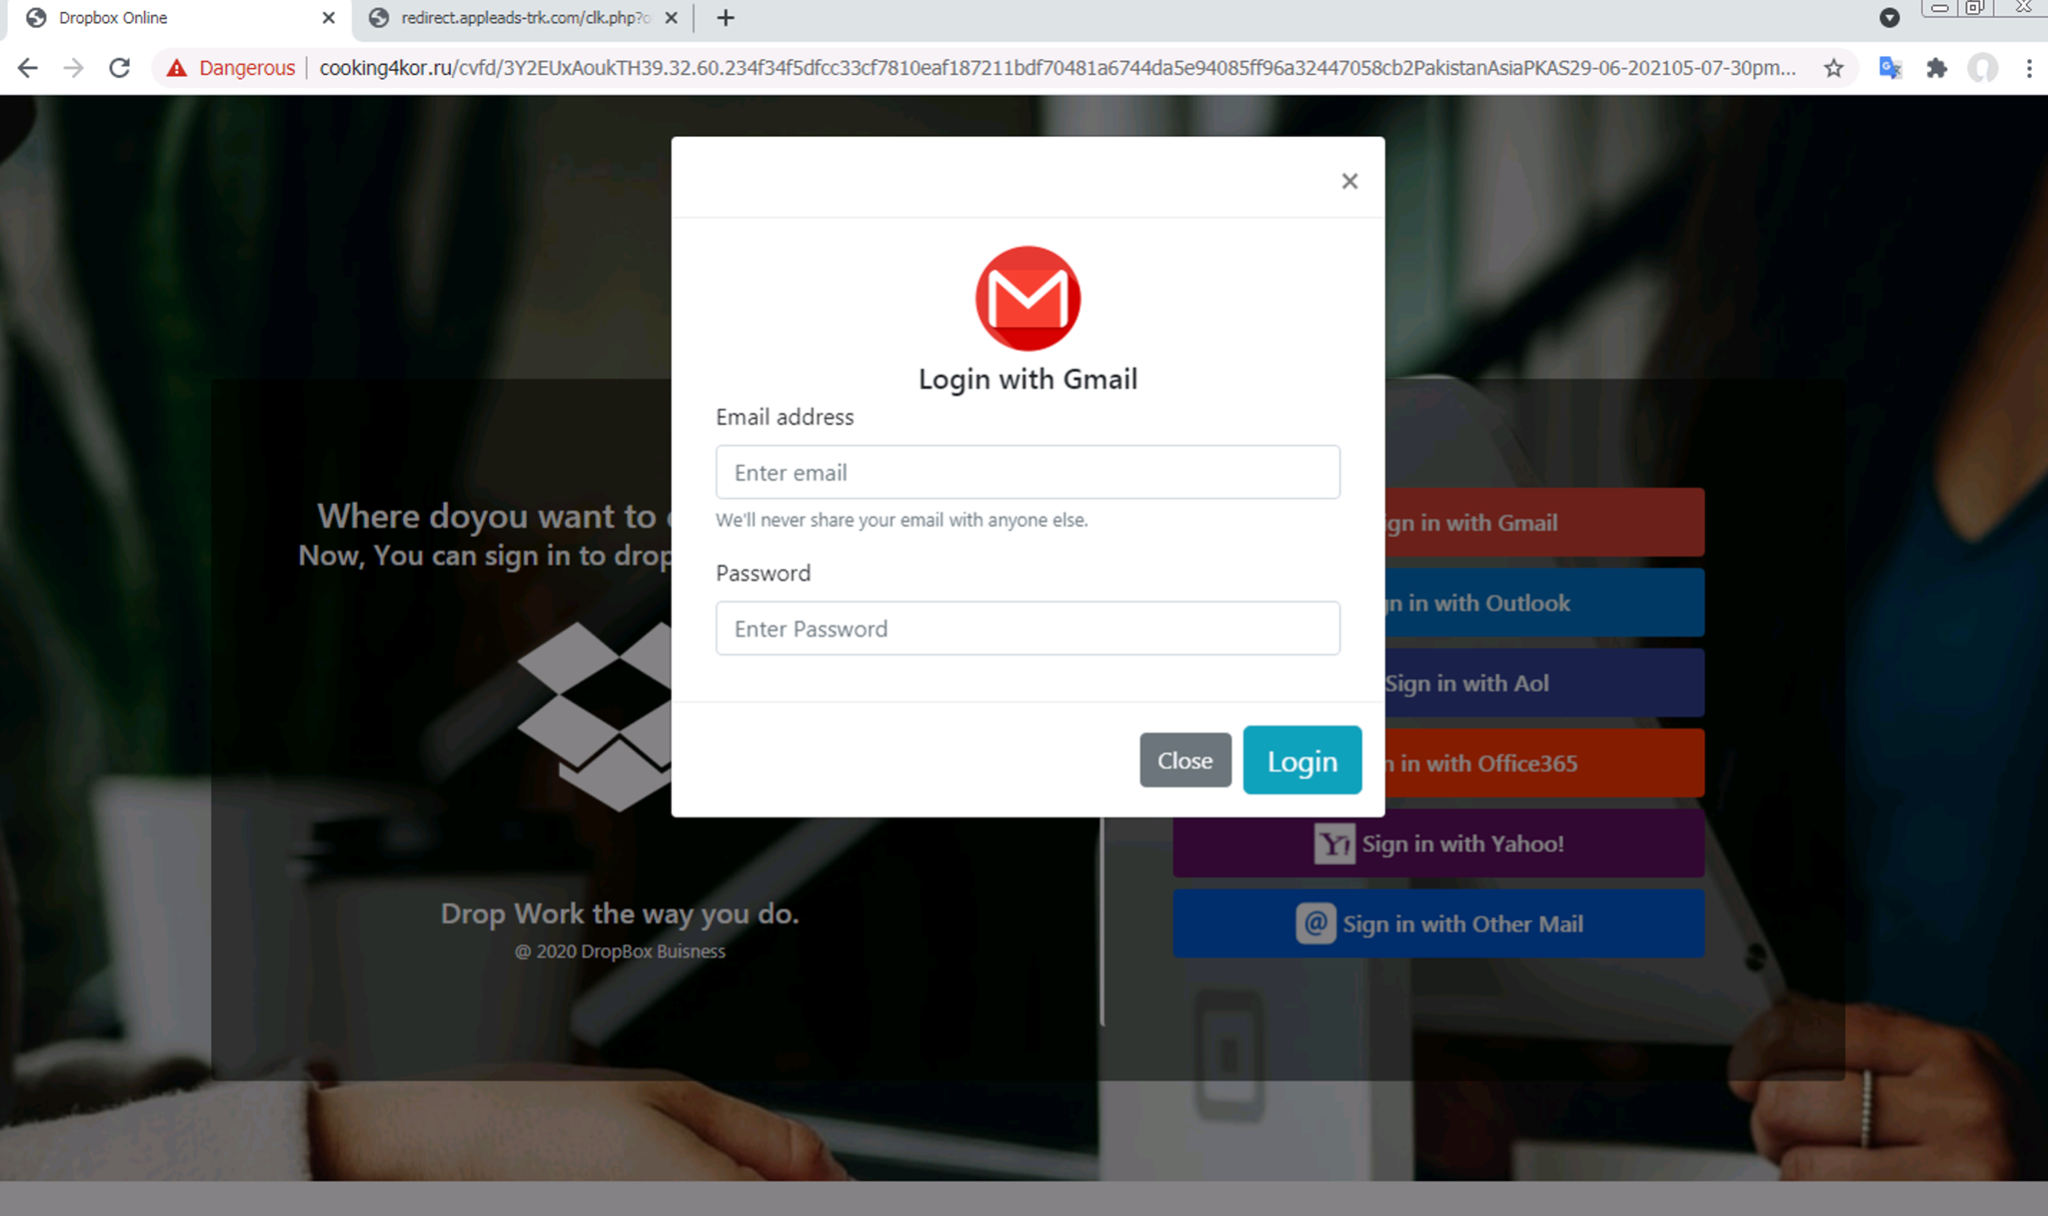 """After clicking either a """"Sign in with Gmail"""" button or a """"Sign in with Outlook"""" button, the user is presented with a modal asking for their login information."""